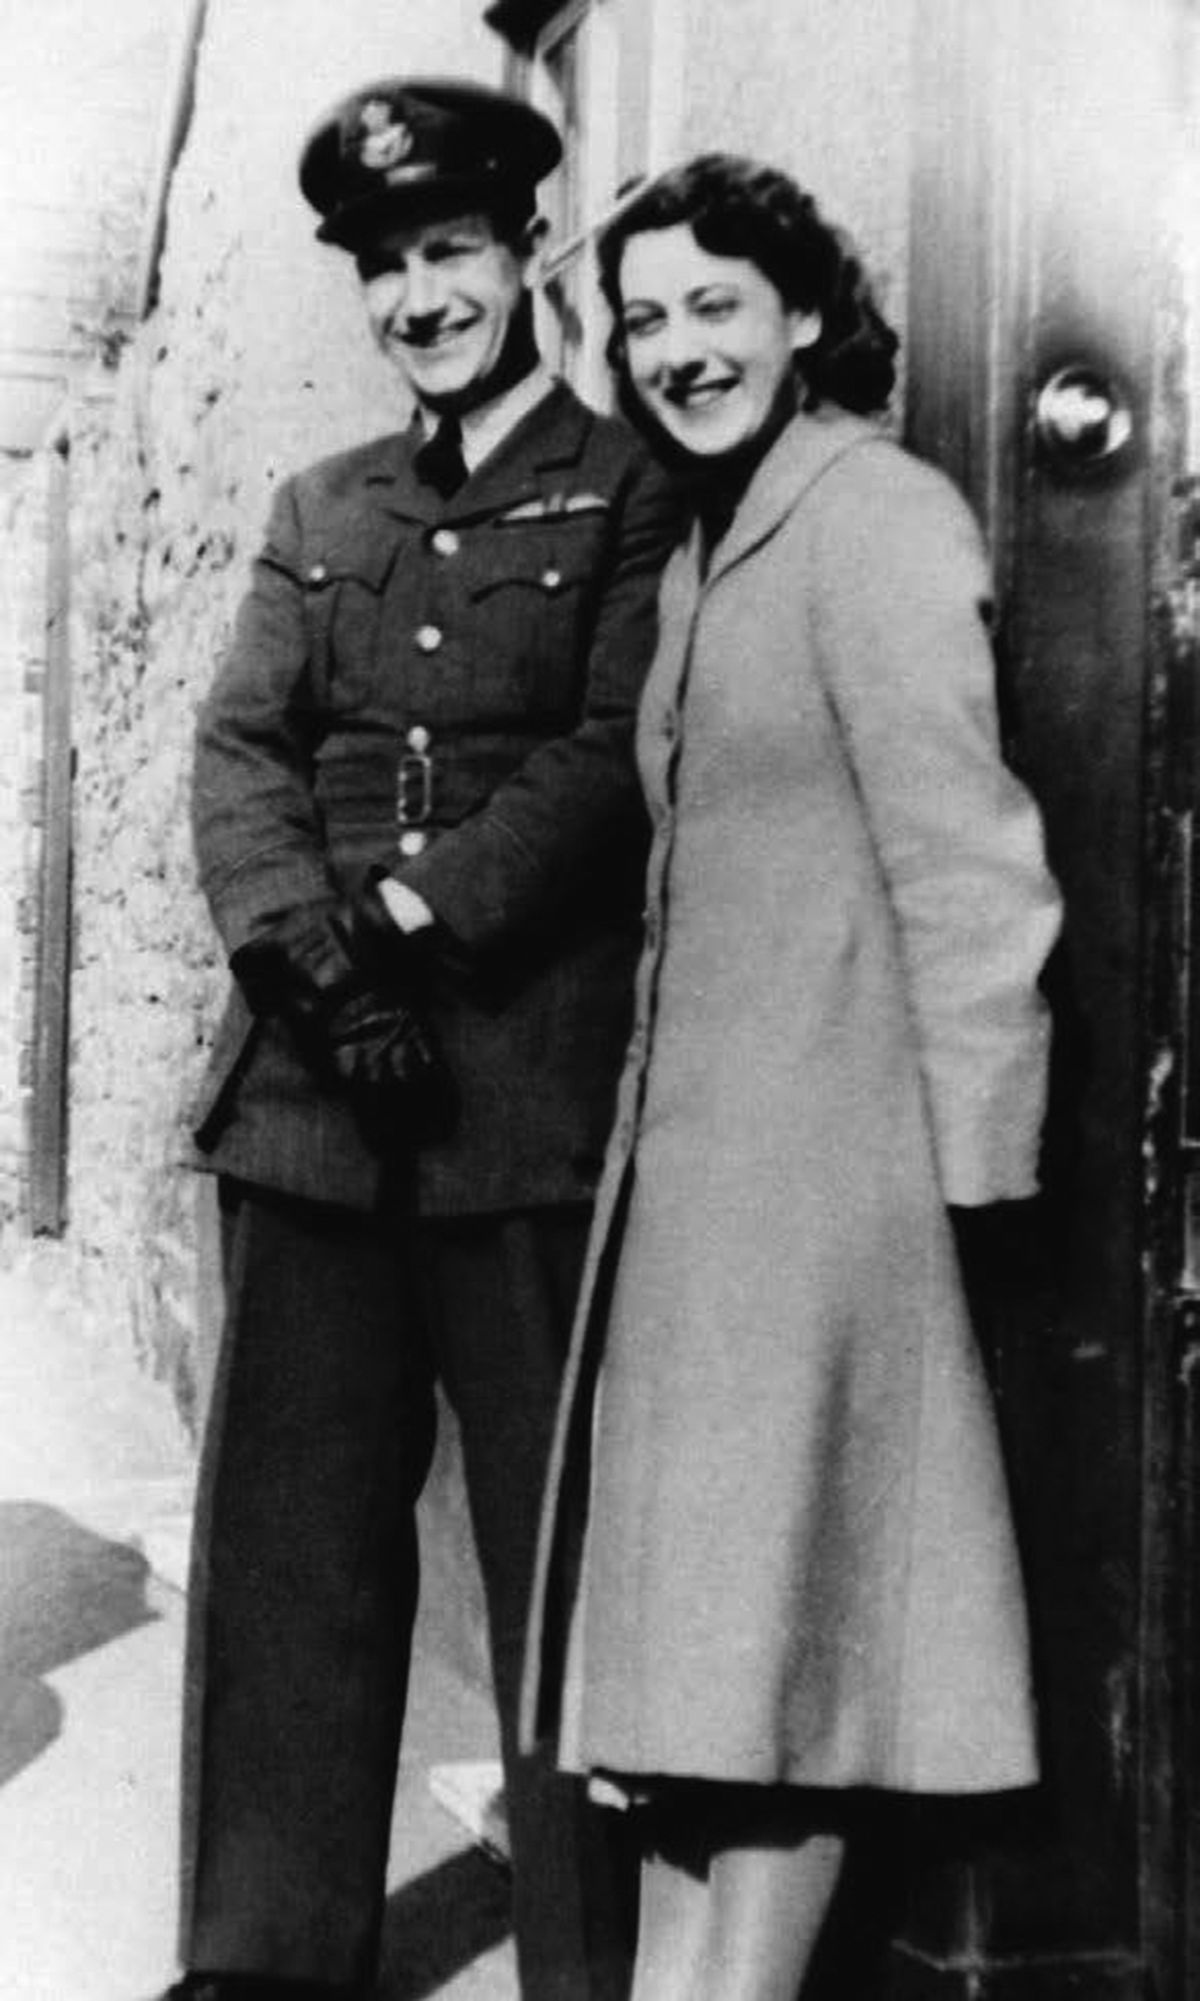 Jack at home in Knighton with an unidentified friend.